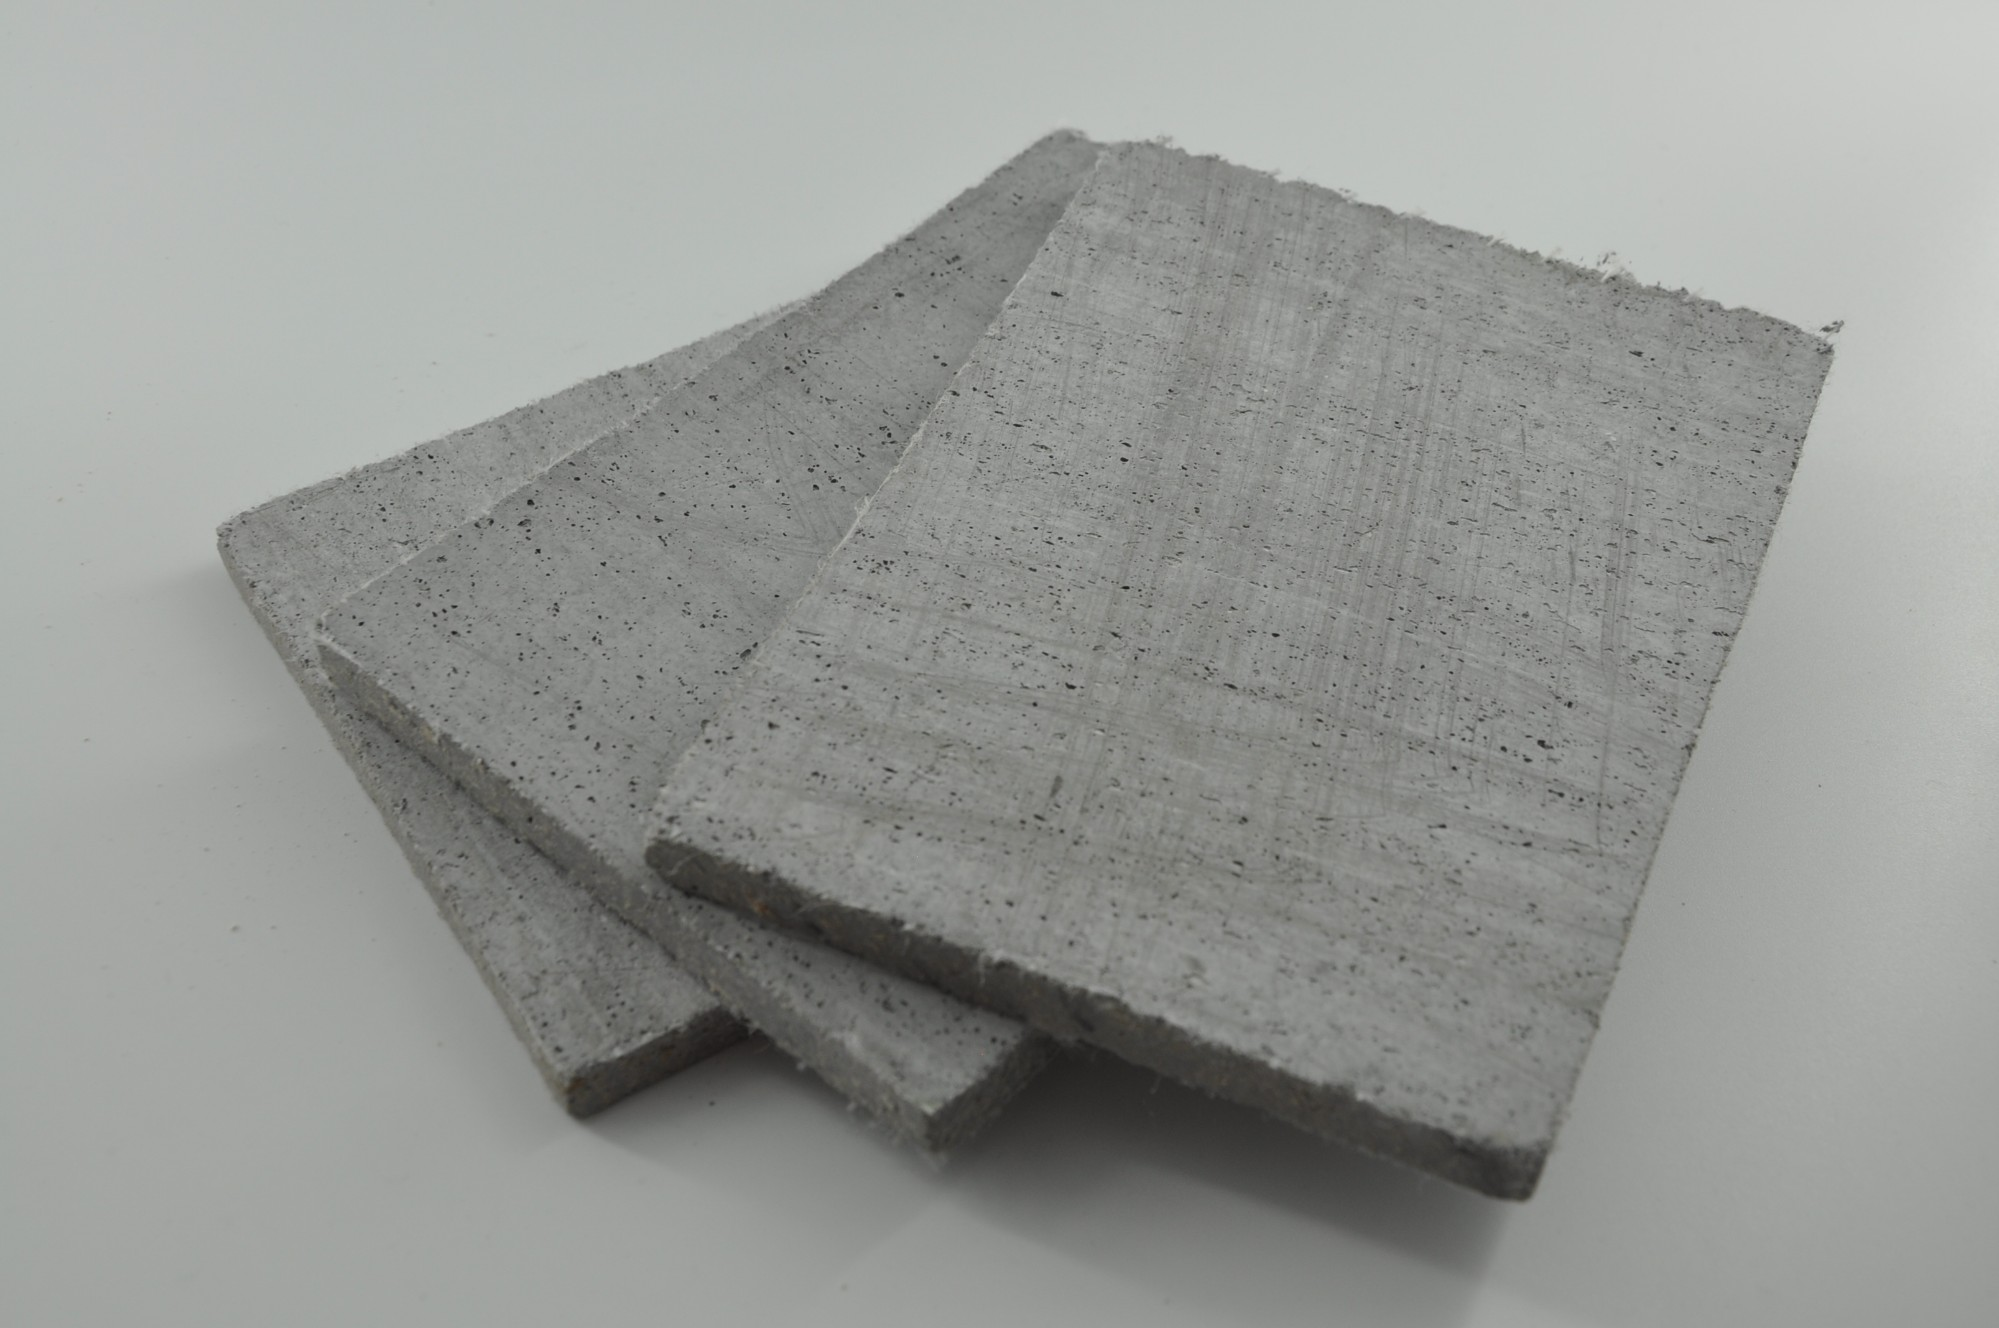 glass magnesium board Manufacturers, glass magnesium board Factory, Supply glass magnesium board